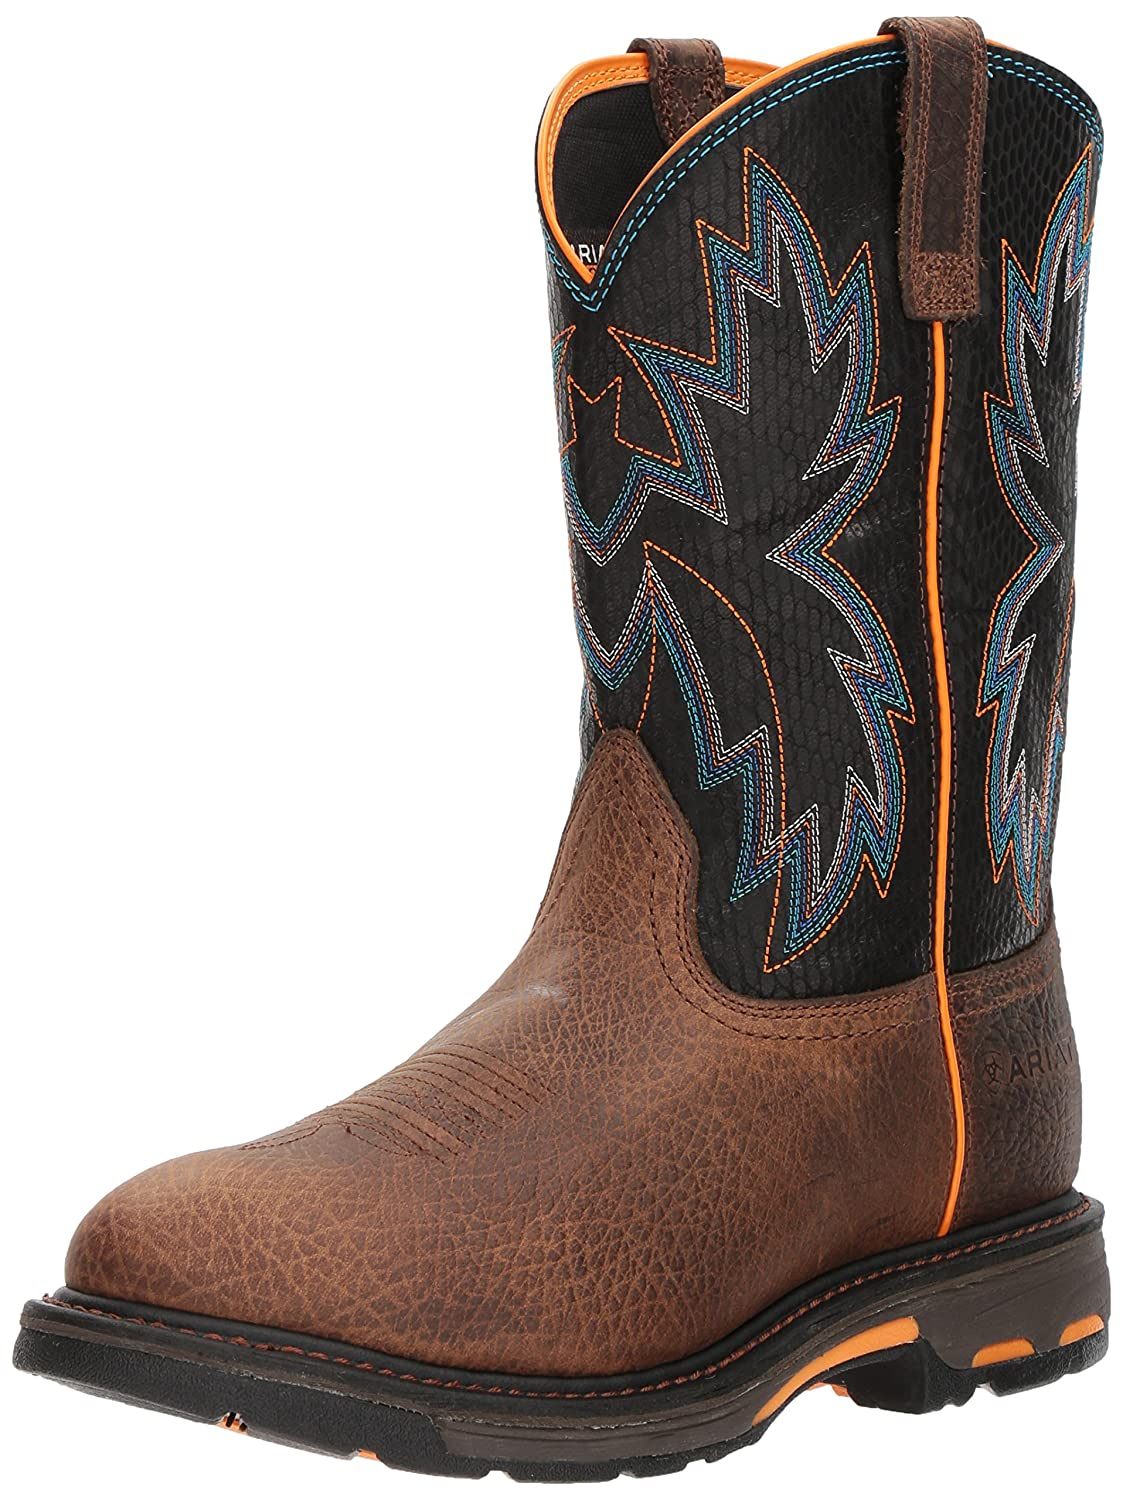 Ariat Work メンズ Workhog Raptor B076MCT7DT 8.5 D(M) US|Earth/Black Snake Print Earth/Black Snake Print 8.5 D(M) US